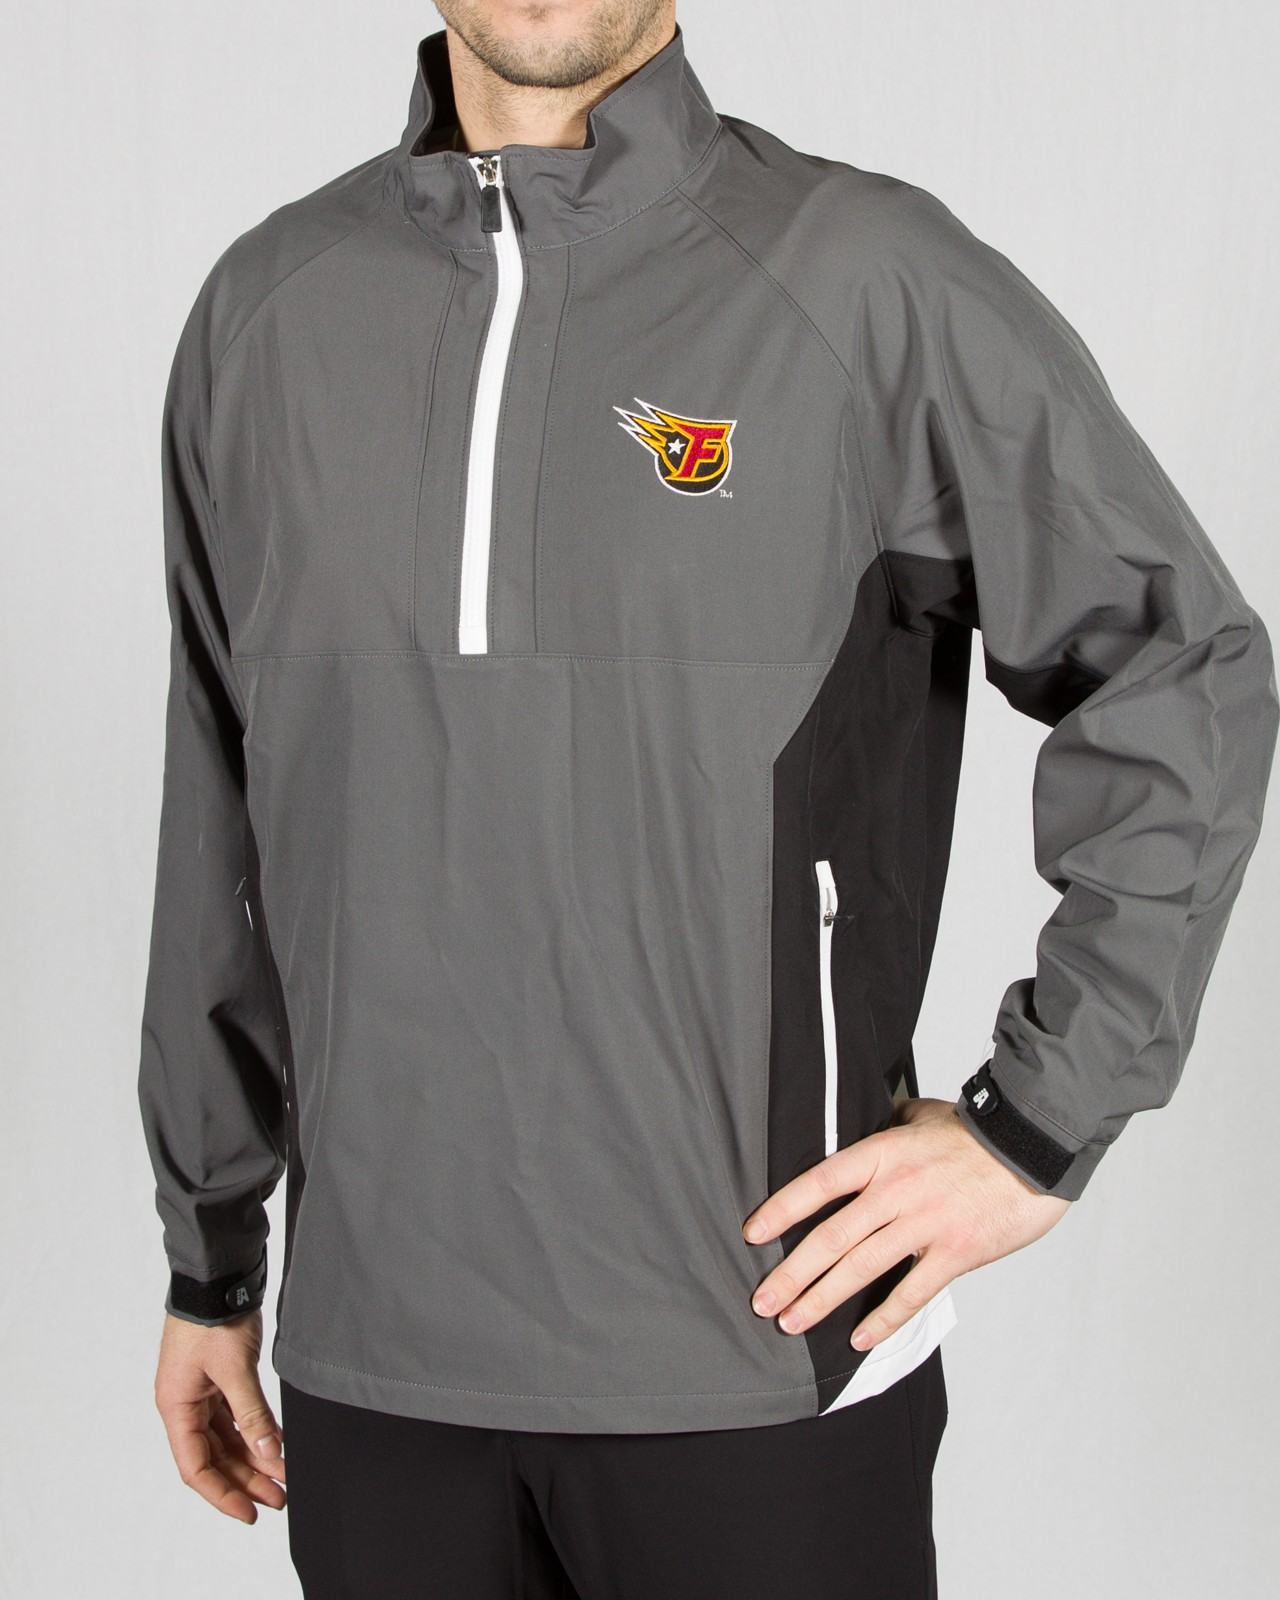 Black/Gray Sideline 1/4 Zip Jacket